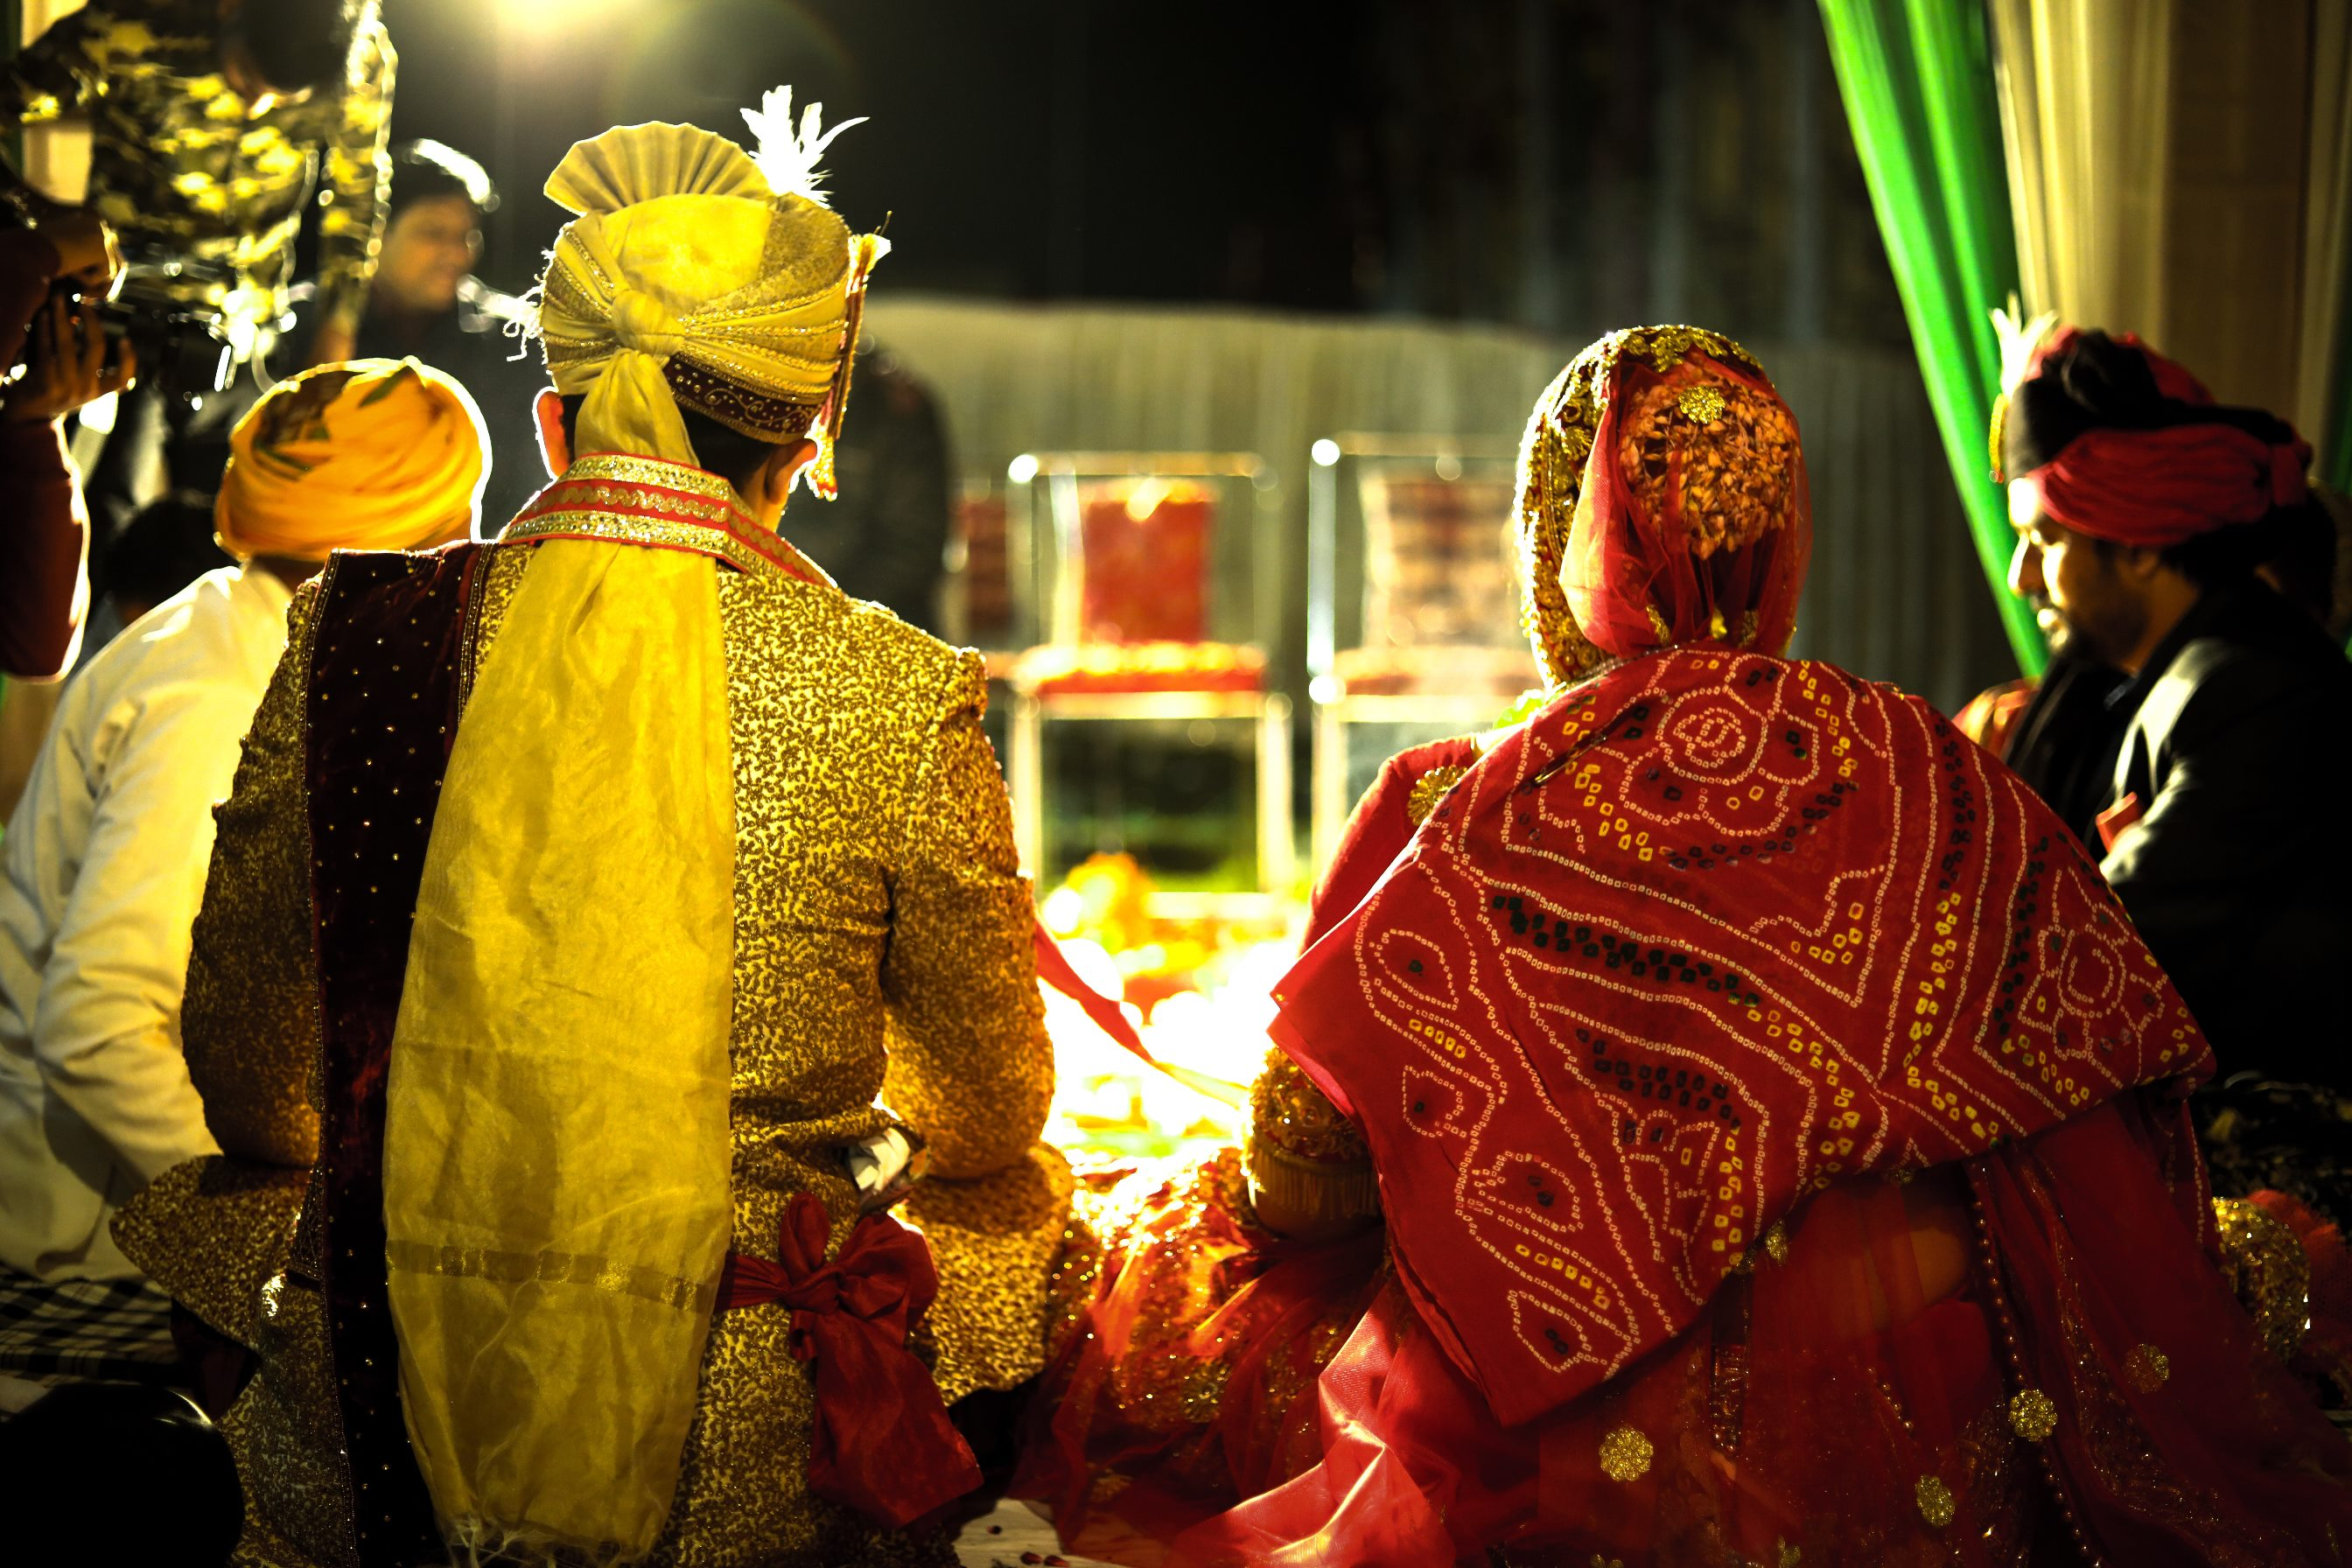 RK BANQUETS, banquet halls in kirti nagar for marriage, wedding packages in Kirti nagar, affordable wedding venues in kirti nagar, 5 star wedding venues in kirti nagar, banquet halls in delhi for engagement in kir